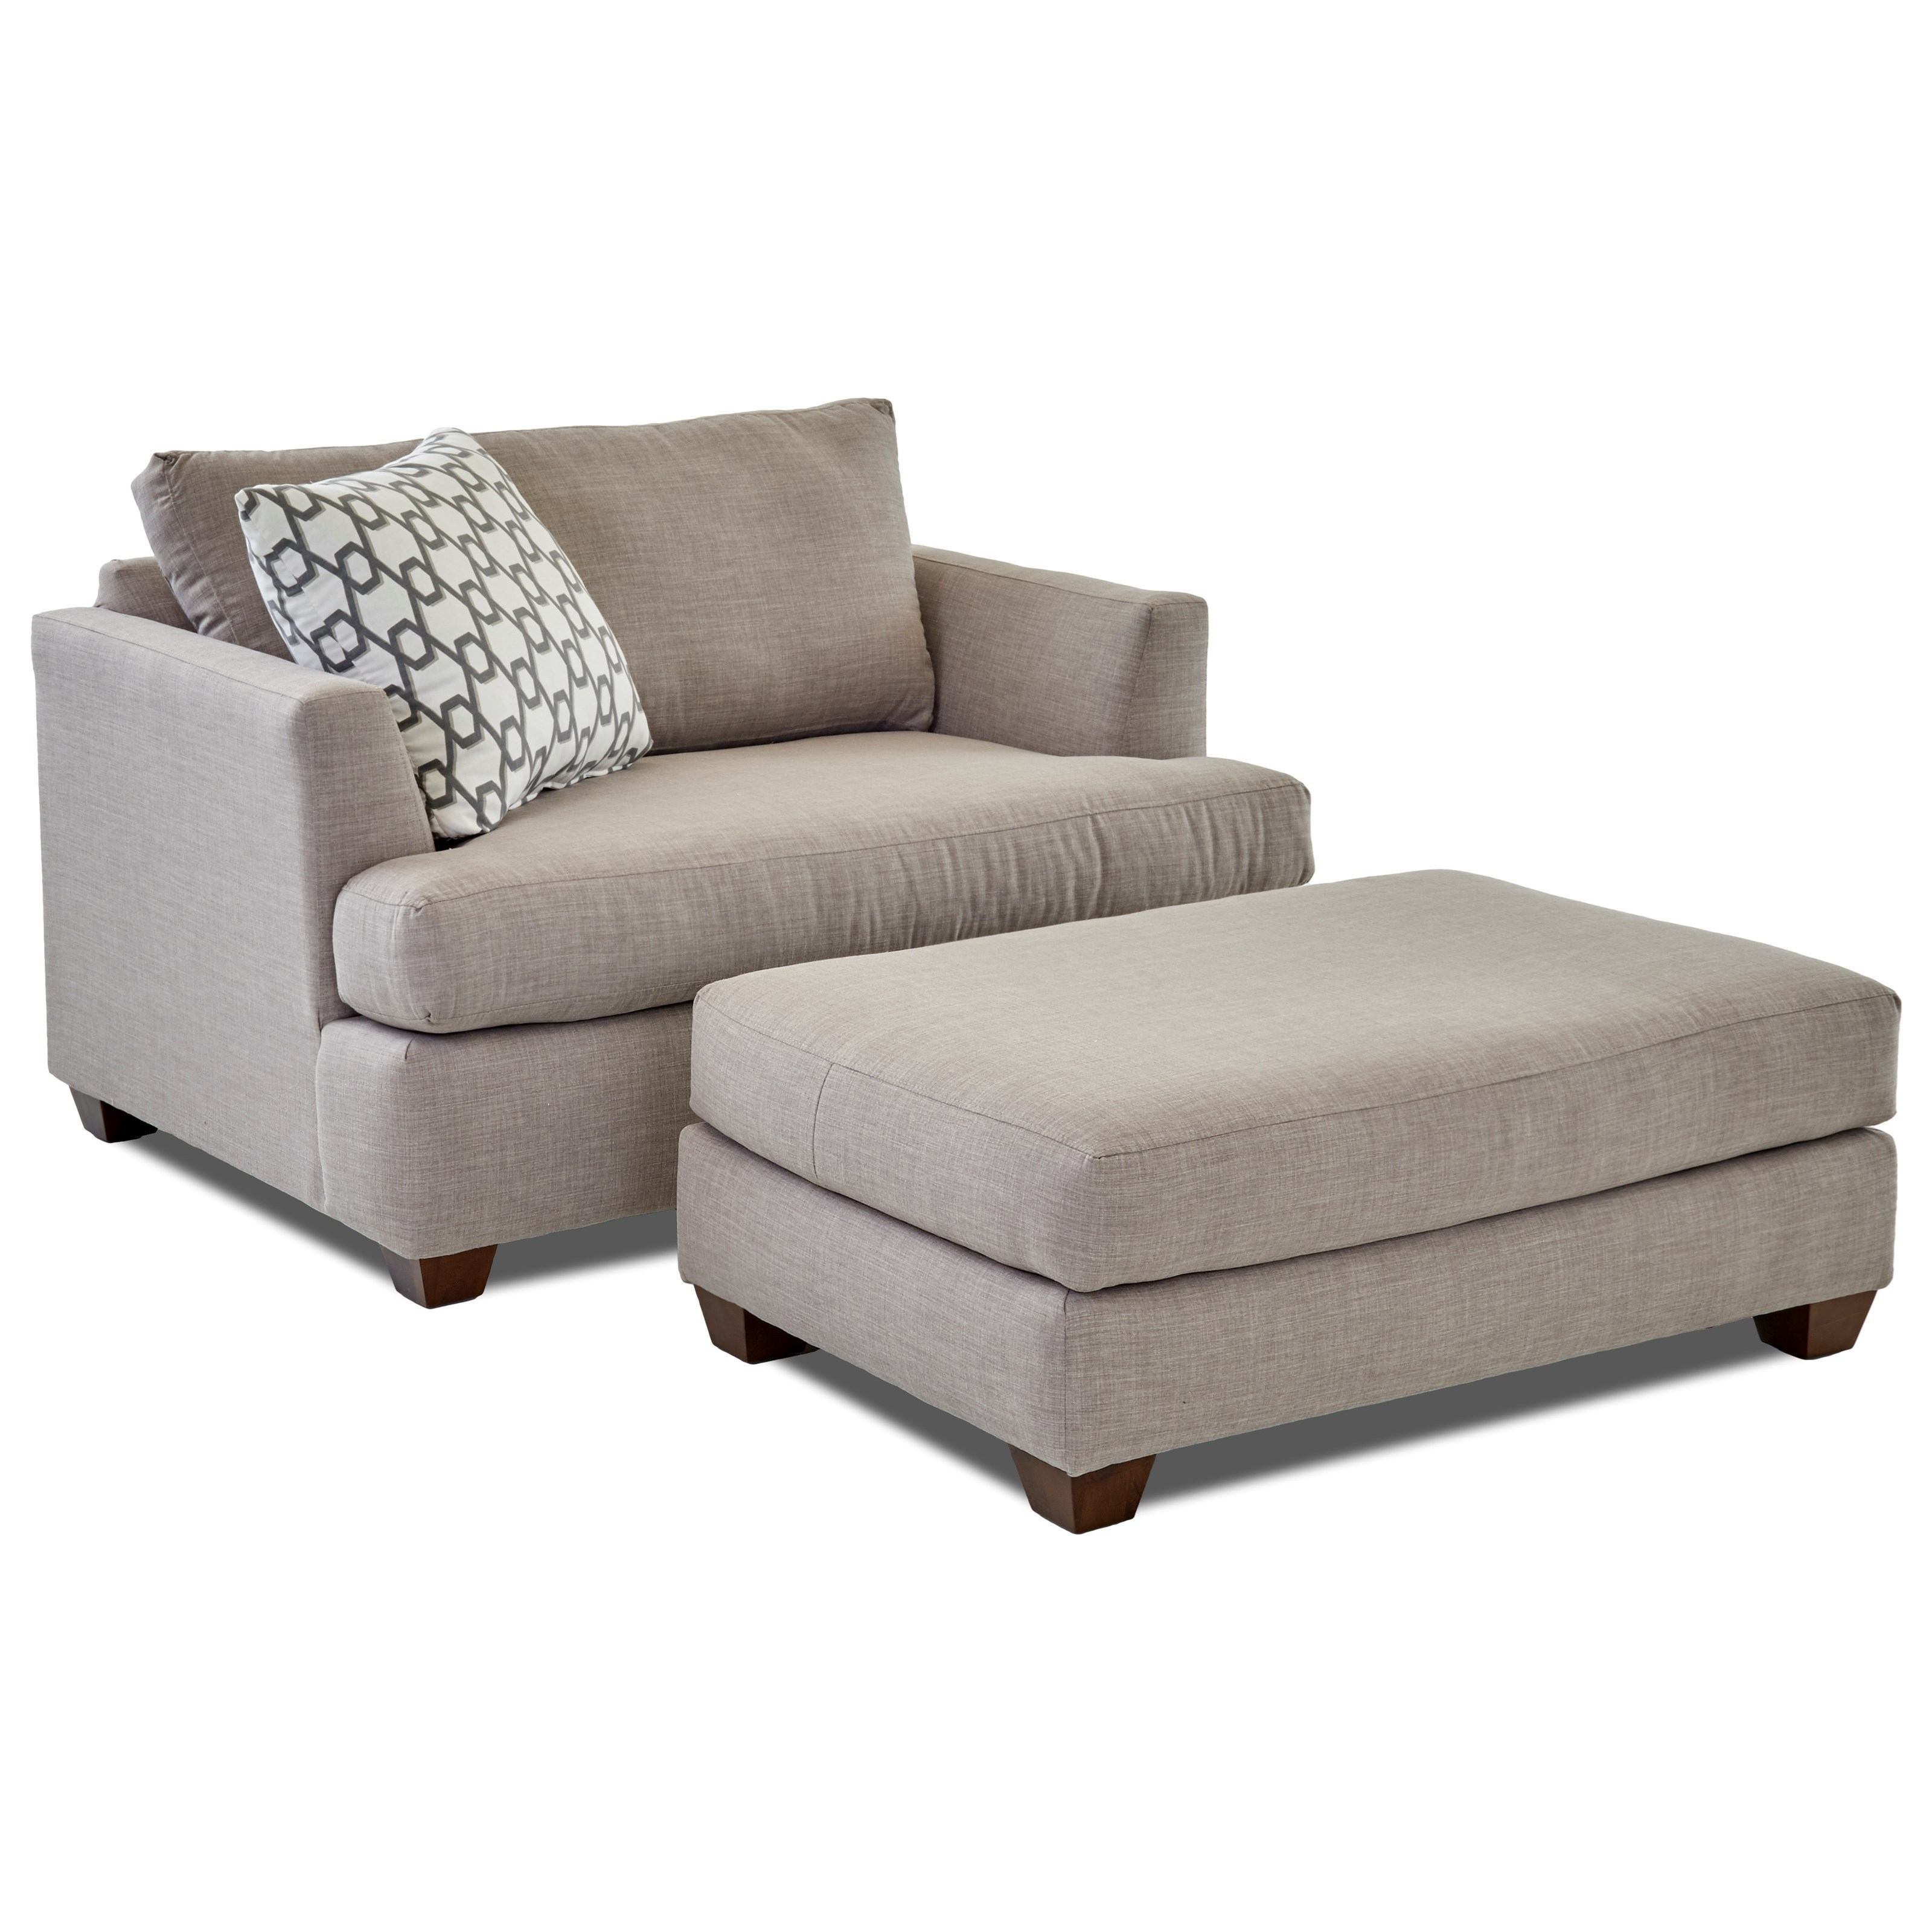 Elliston Place JackBig Chair And Ottoman Set ...